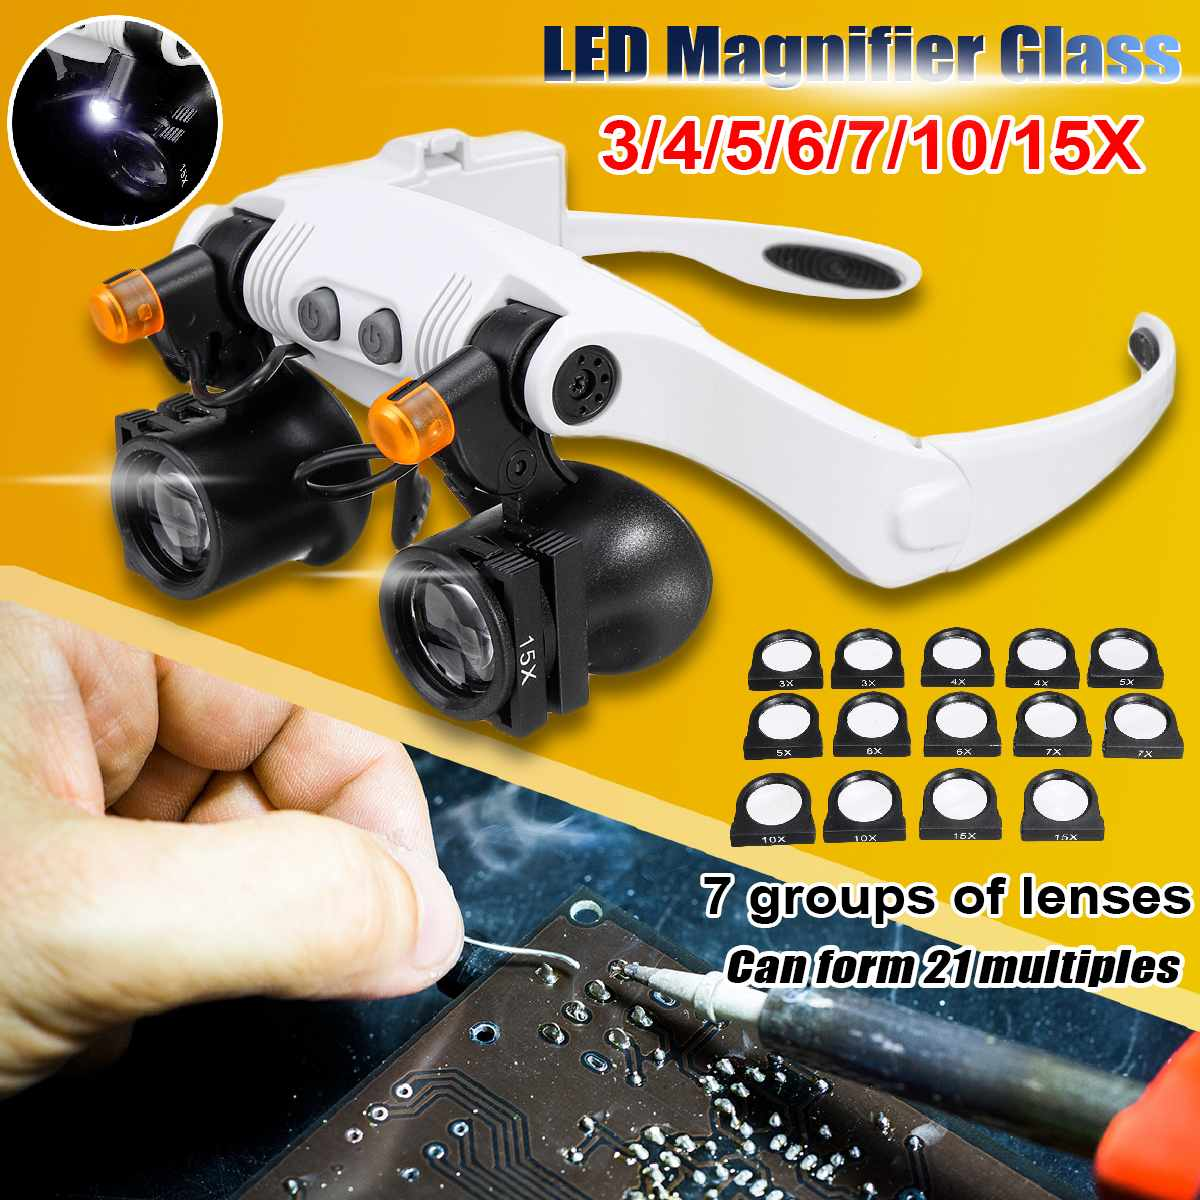 Professional 3X 4X 5X 6X 7X 10X 15X Adjustable 7 Lens Loupe LED Light Headband Magnifier Glass LED Magnifying Glasses With Lamp